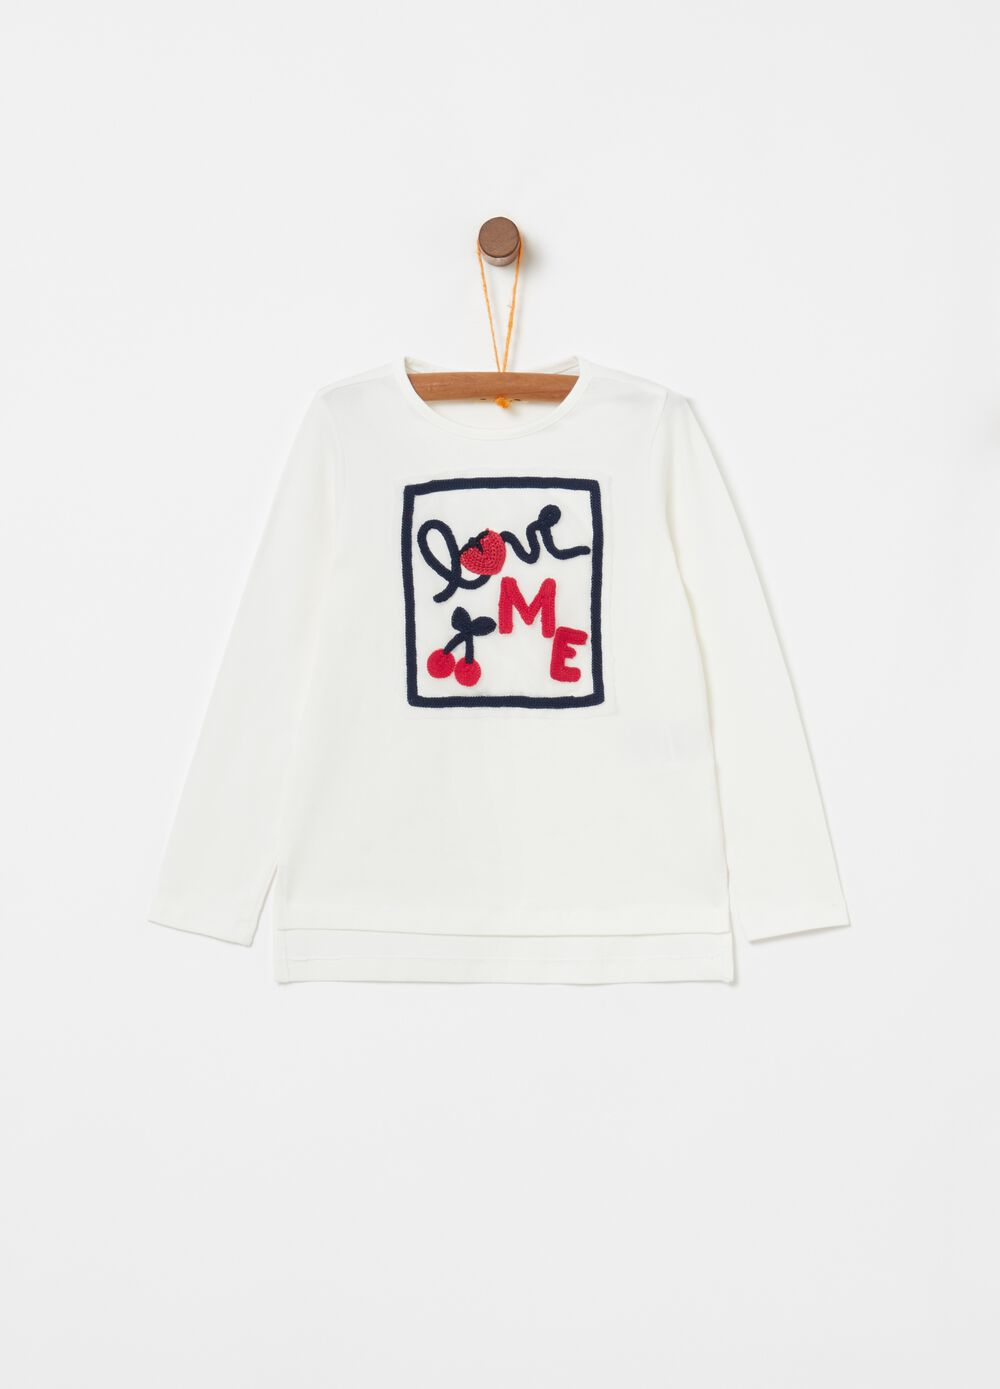 Stretch biocotton T-shirt with lettering embroidery